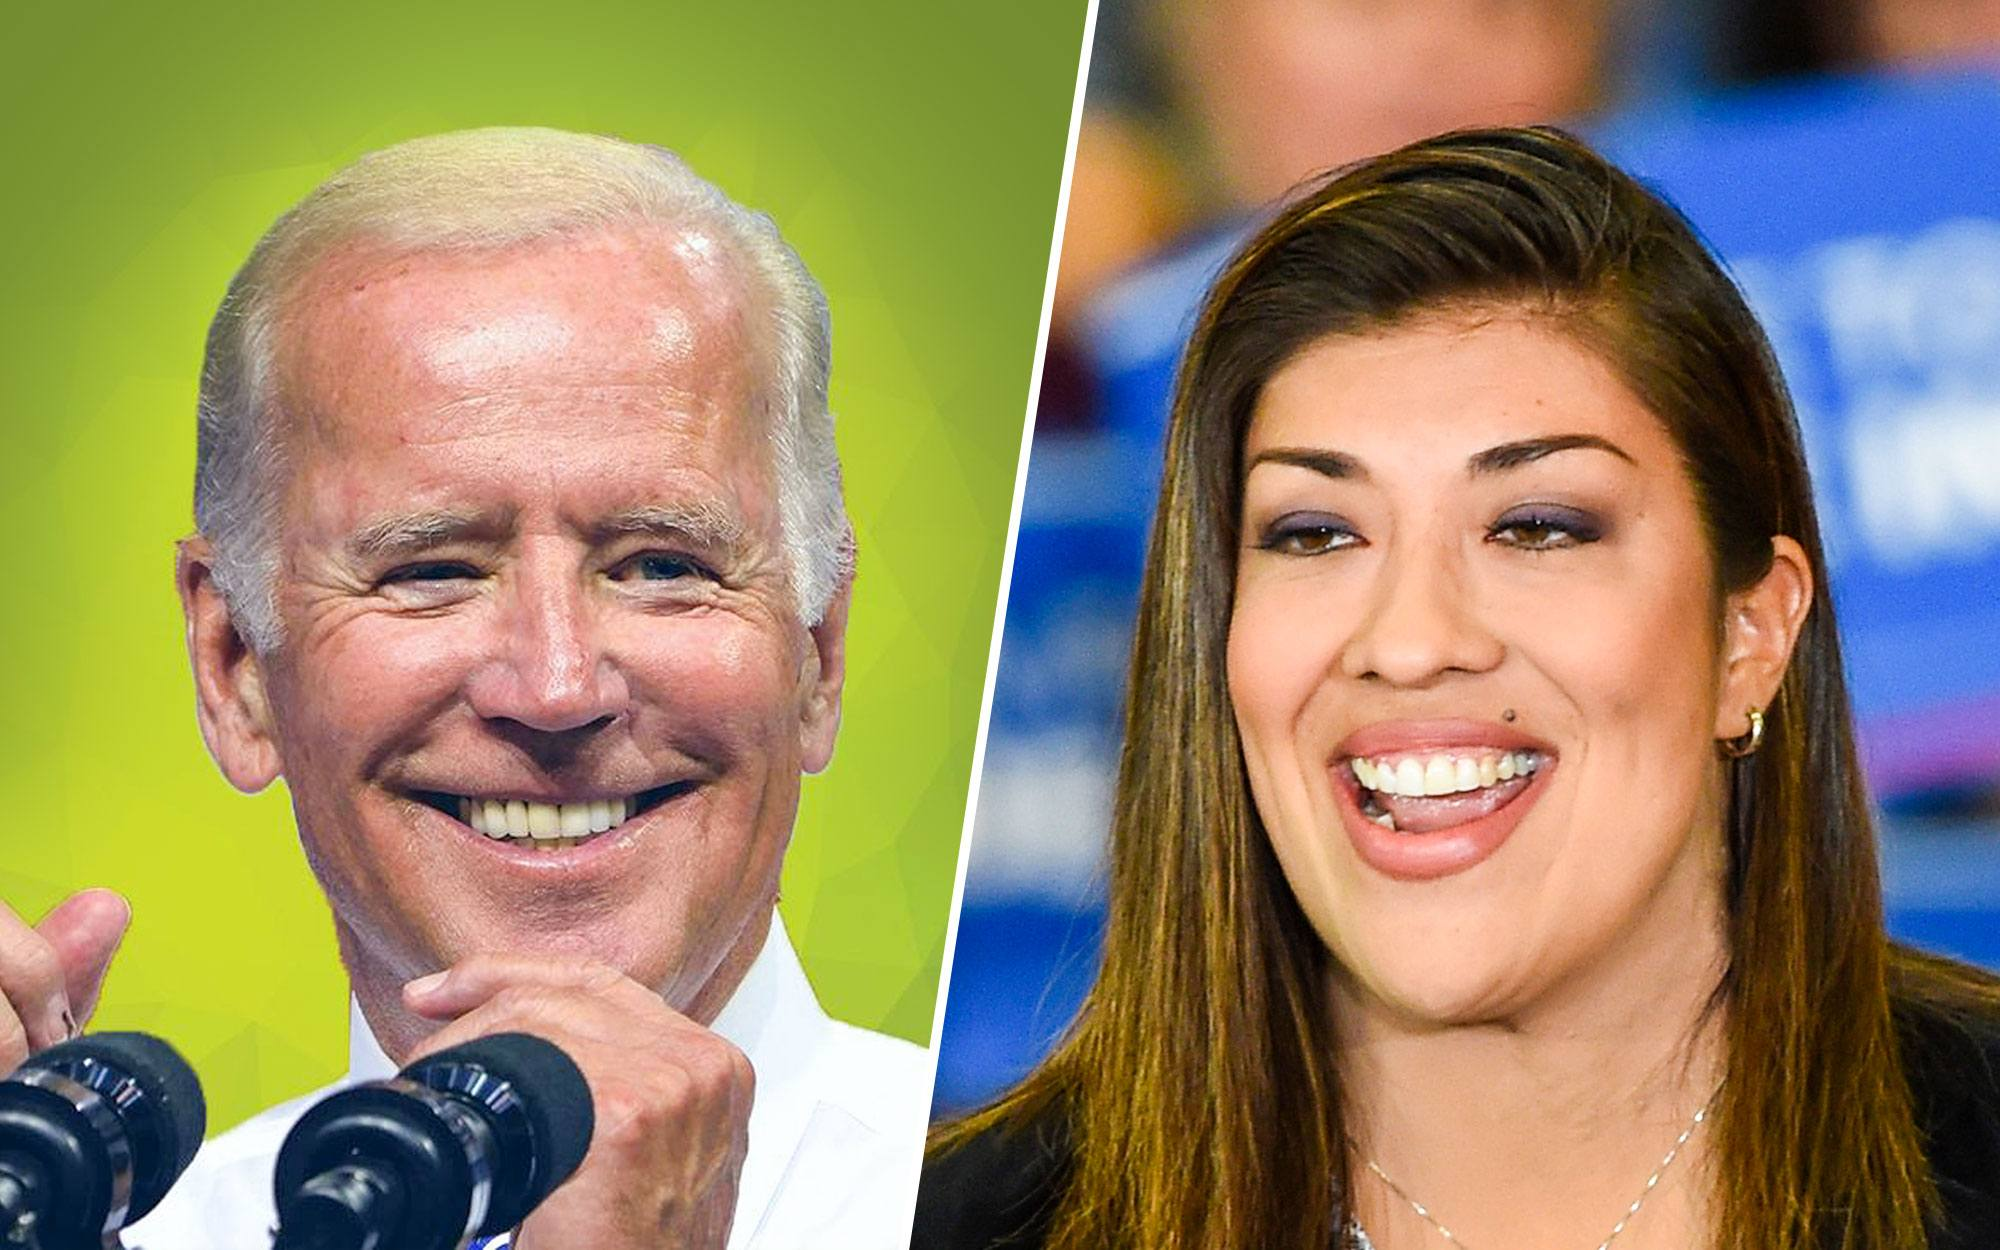 Biden's Perplexing Problem: Even More Accusers of Inappropriate Touching Have Come Forward